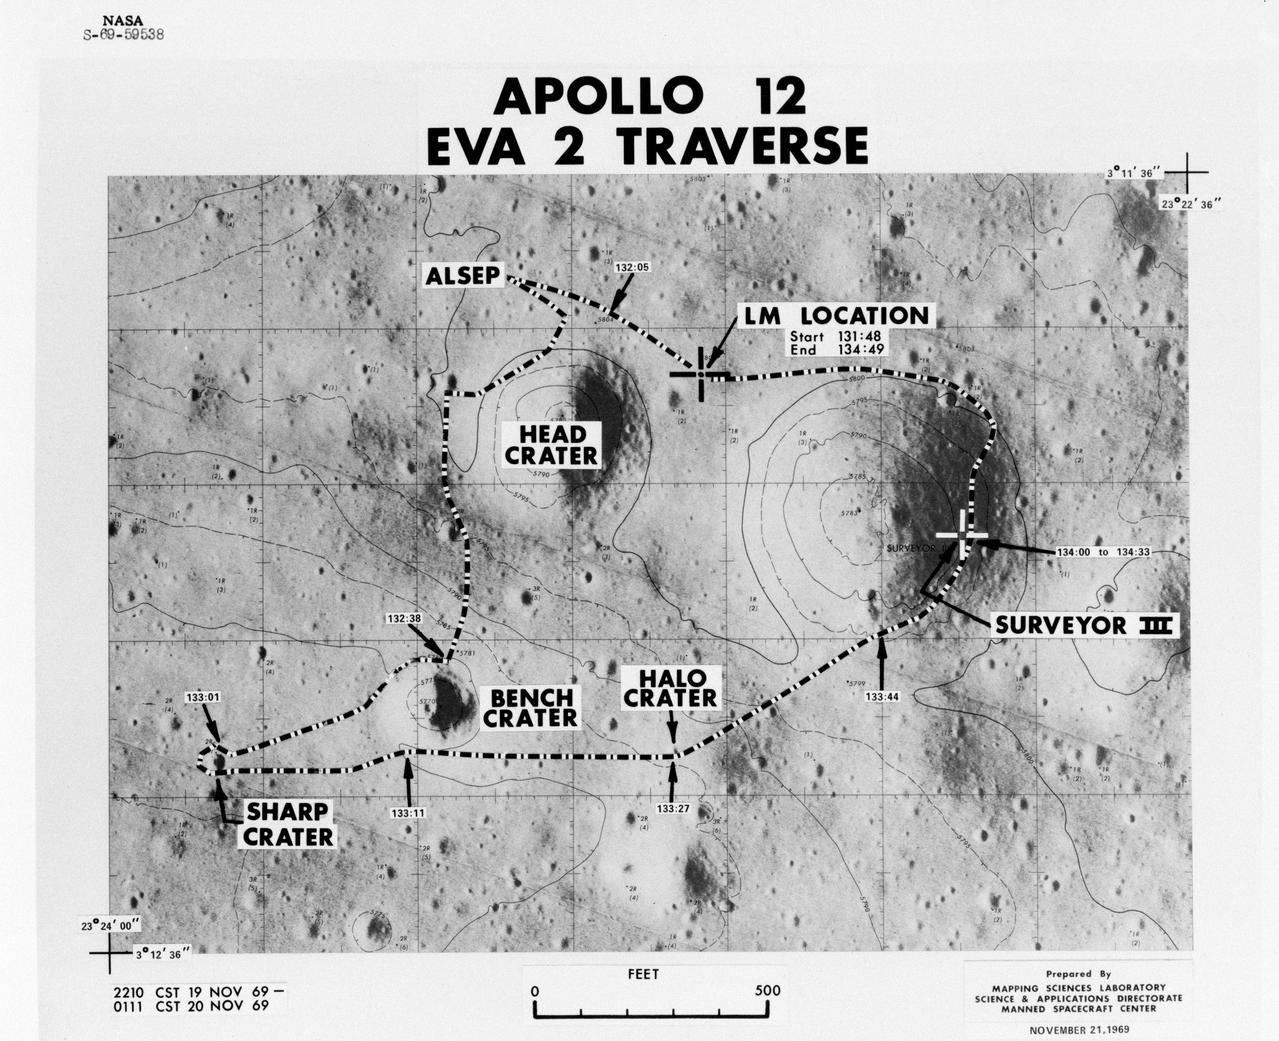 traverse map with paths and craters labeled